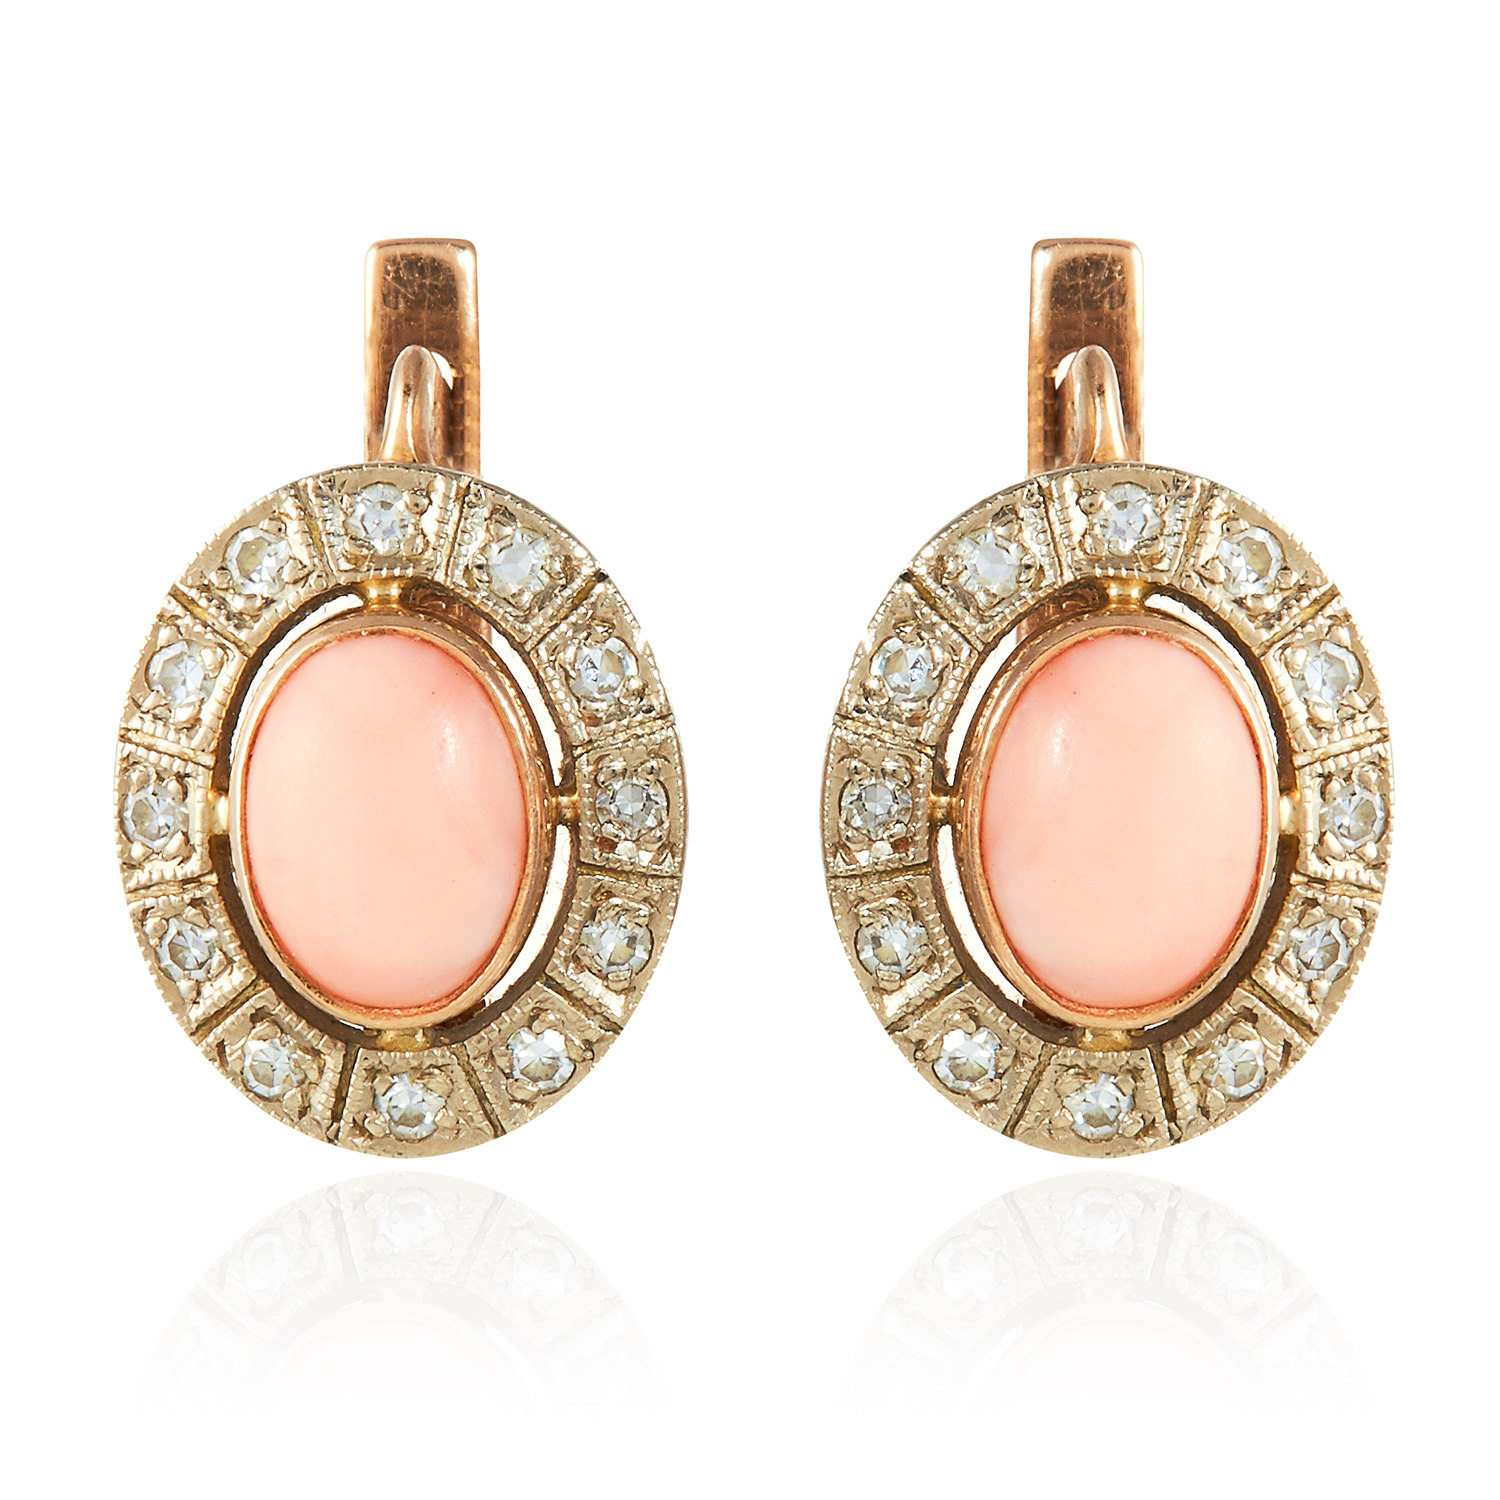 Los 348 - A PAIR OF CORAL AND DIAMOND EARRINGS in yellow gold, each oval cluster with coral at the centre,